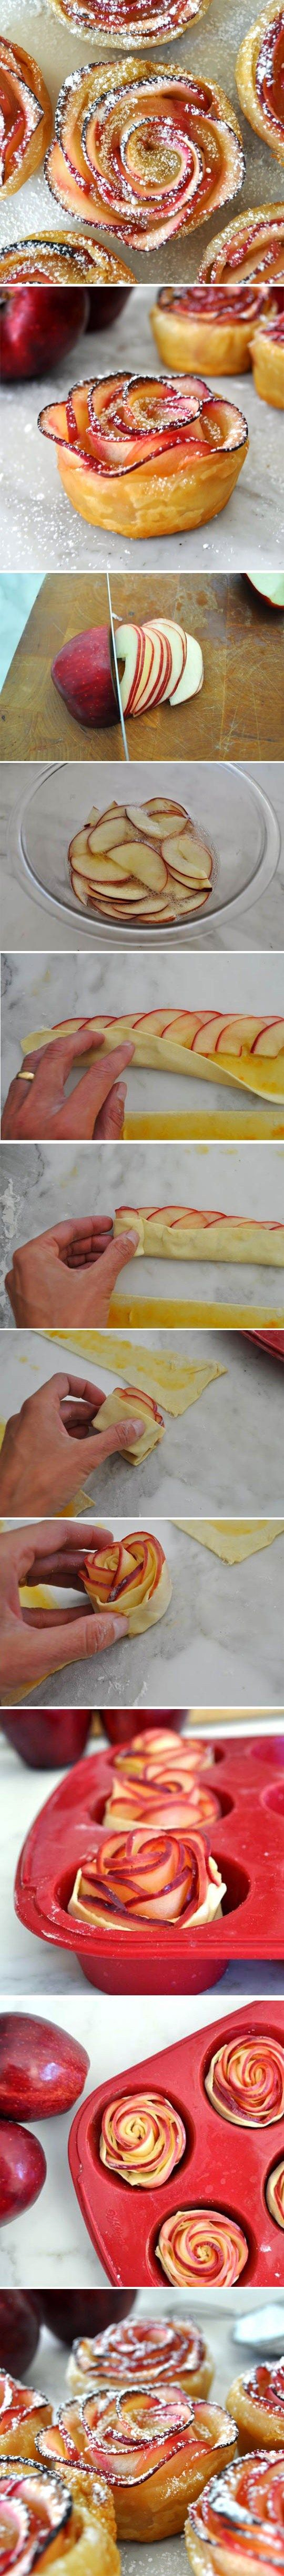 Ingredients: to make 6 roses 1 frozen puff pastry sheet, thawed 2 red organic apples (I used red delicious) half lemon, juice 1 tablespoon of flour, to sprinkle the counter 3 tablespoons of apricot preserve cinnamon (optional) powder sugar for decorating (optional) Full recipe you will find there >> CookingWithManuela If you like this recipe then you …